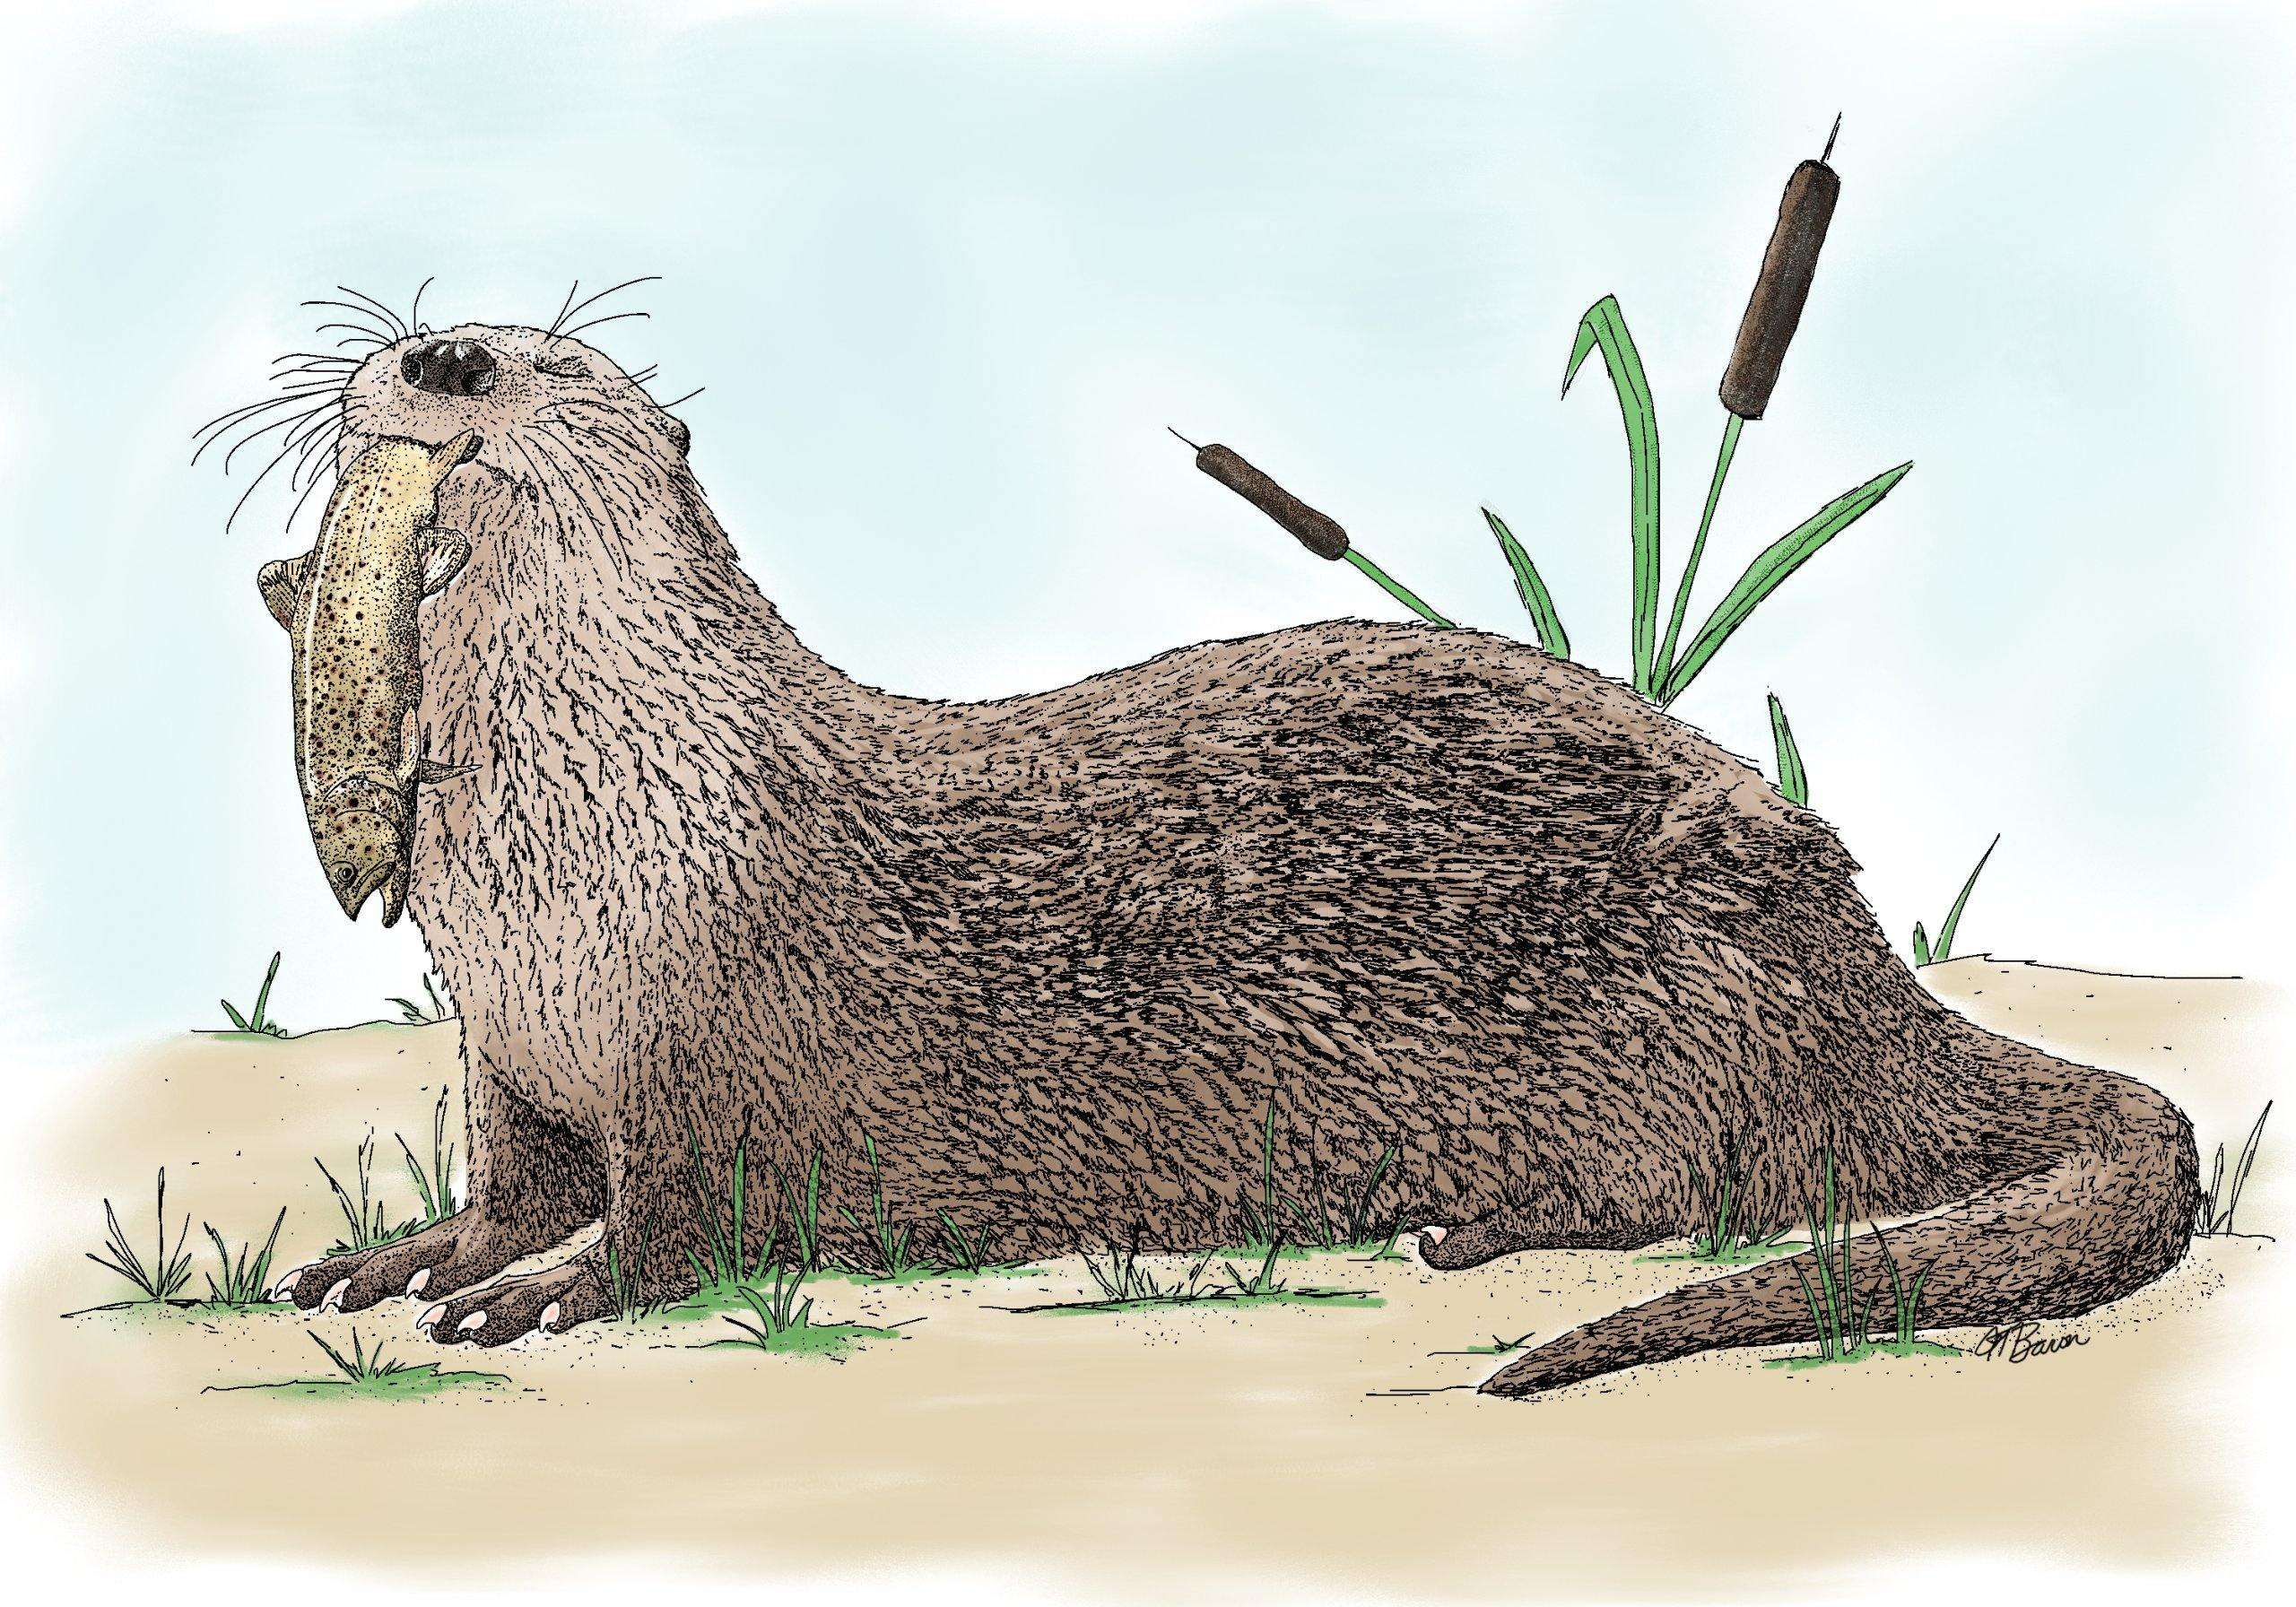 Colored pen and ink drawing of an American River Otter happily holding a Brown Trout in its mouth.